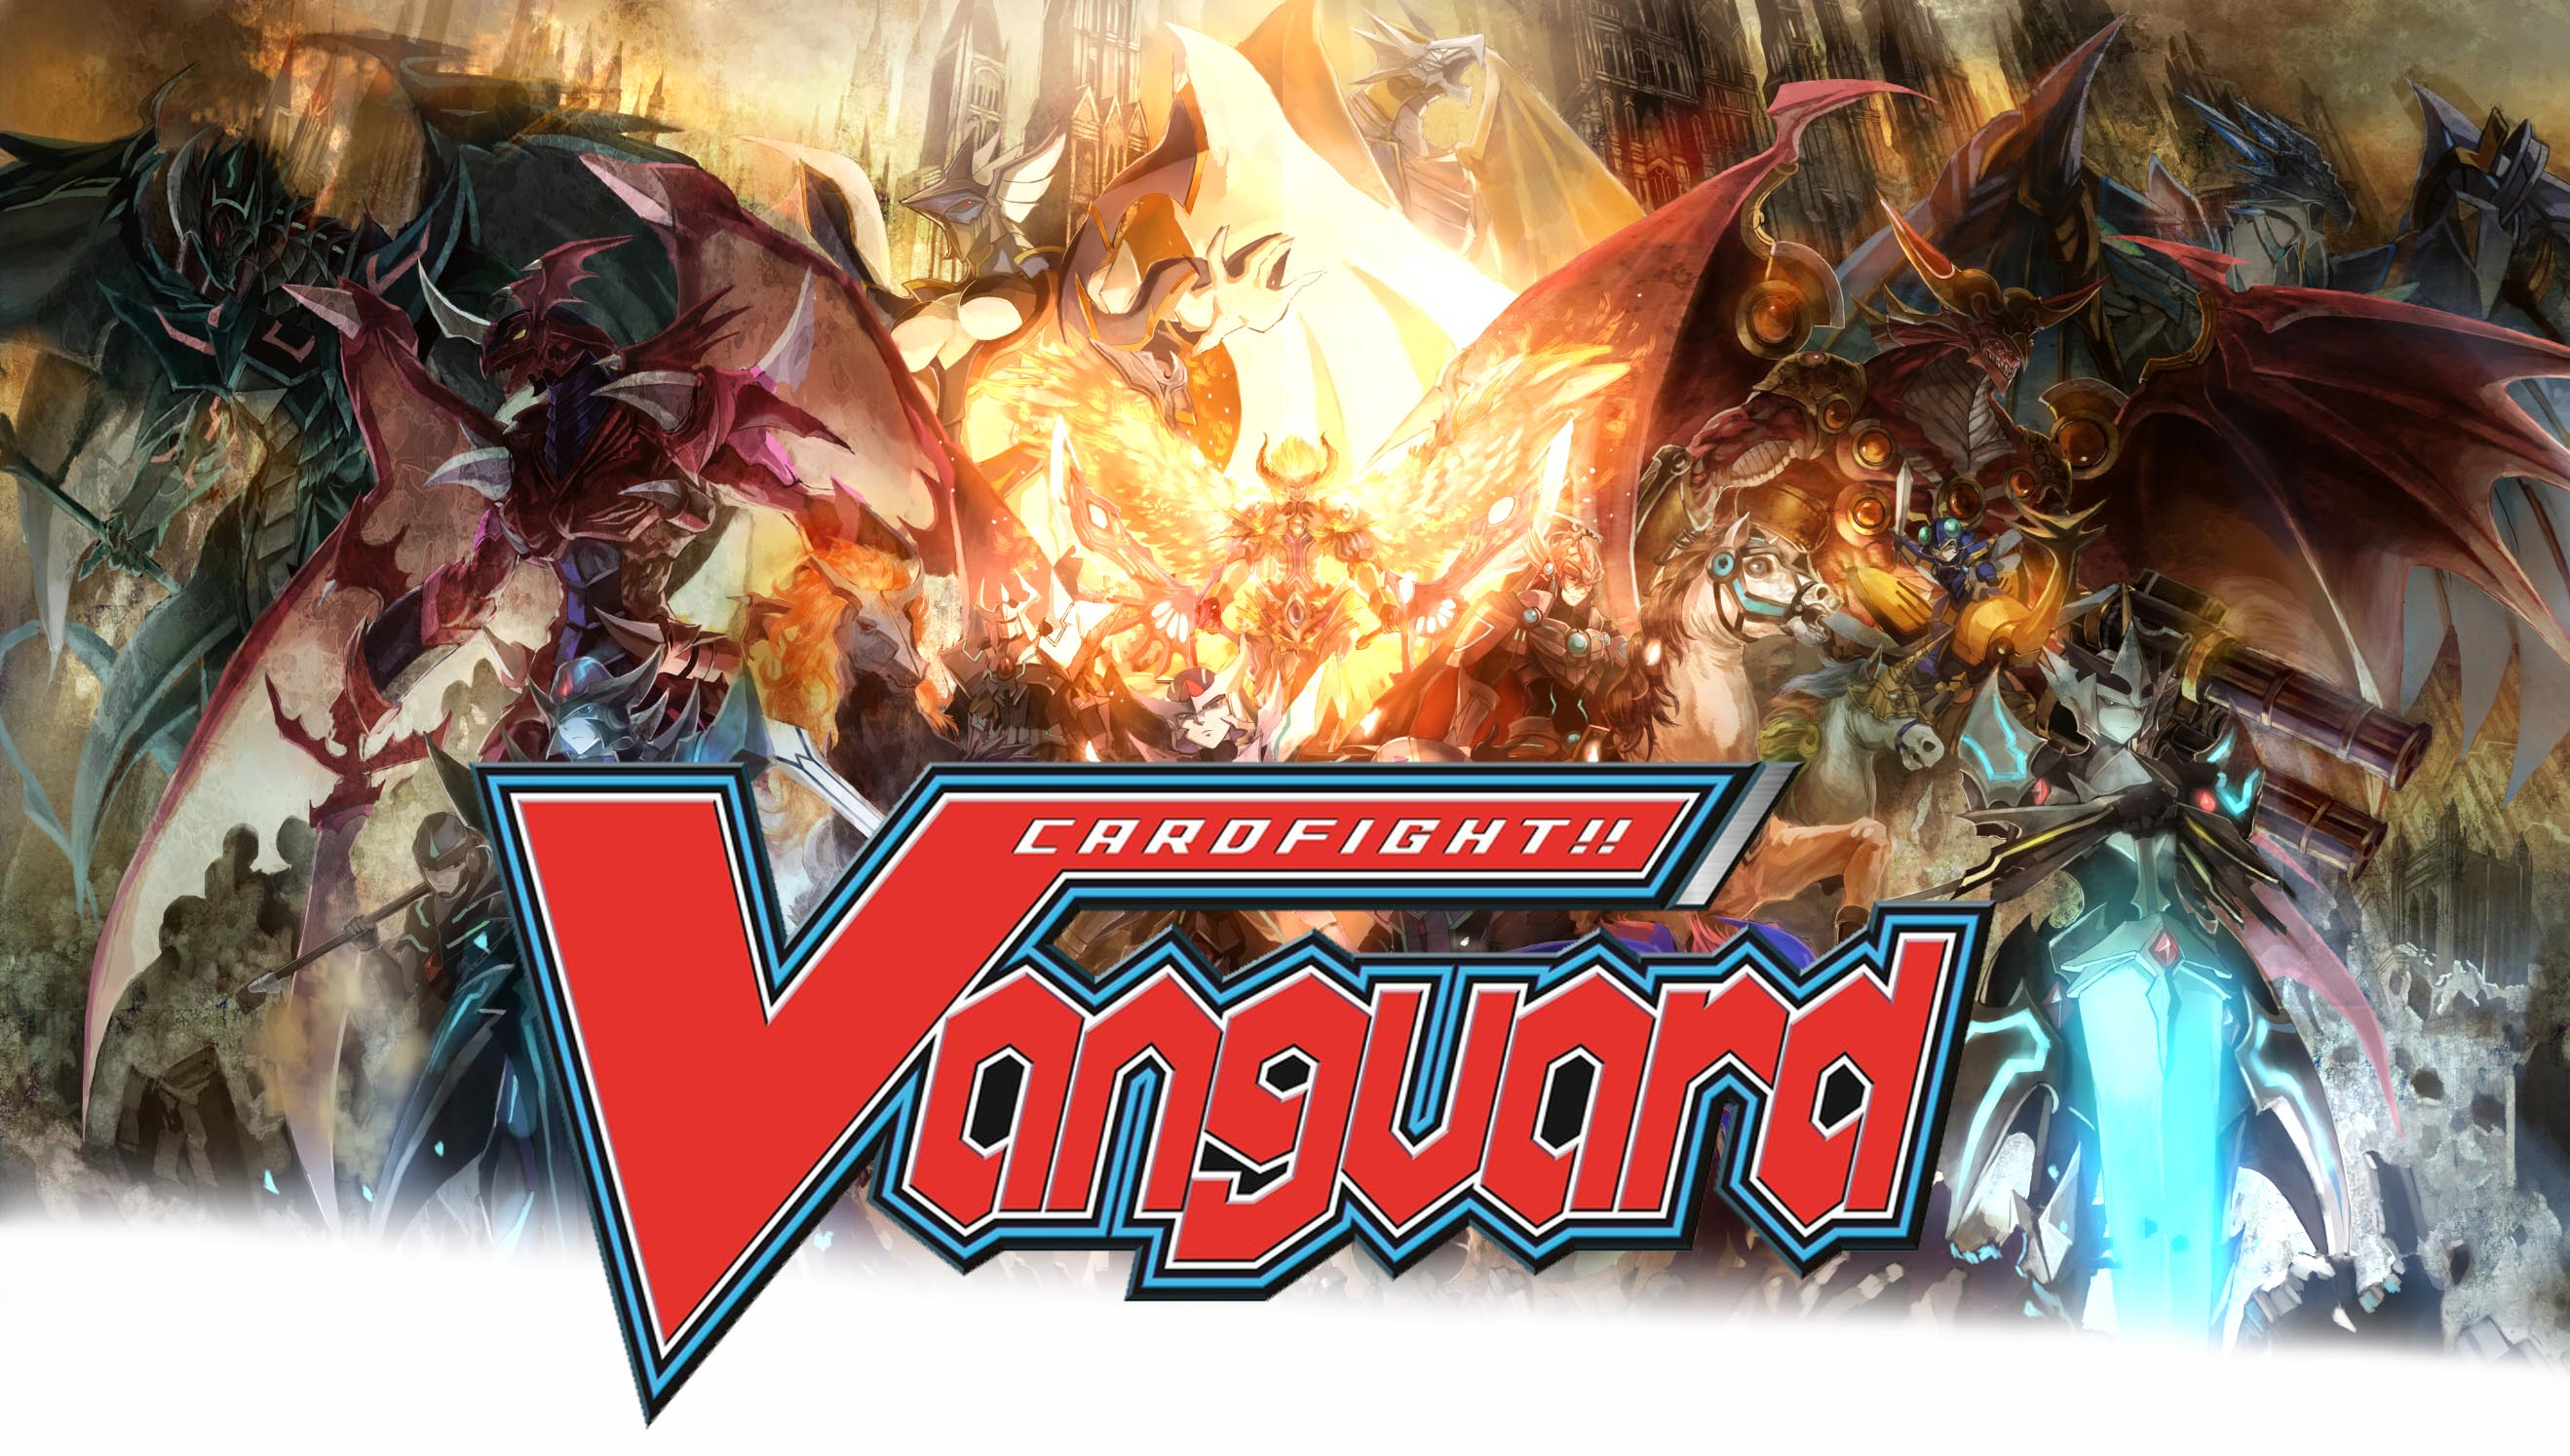 Cardfigt Vanguard Monthly